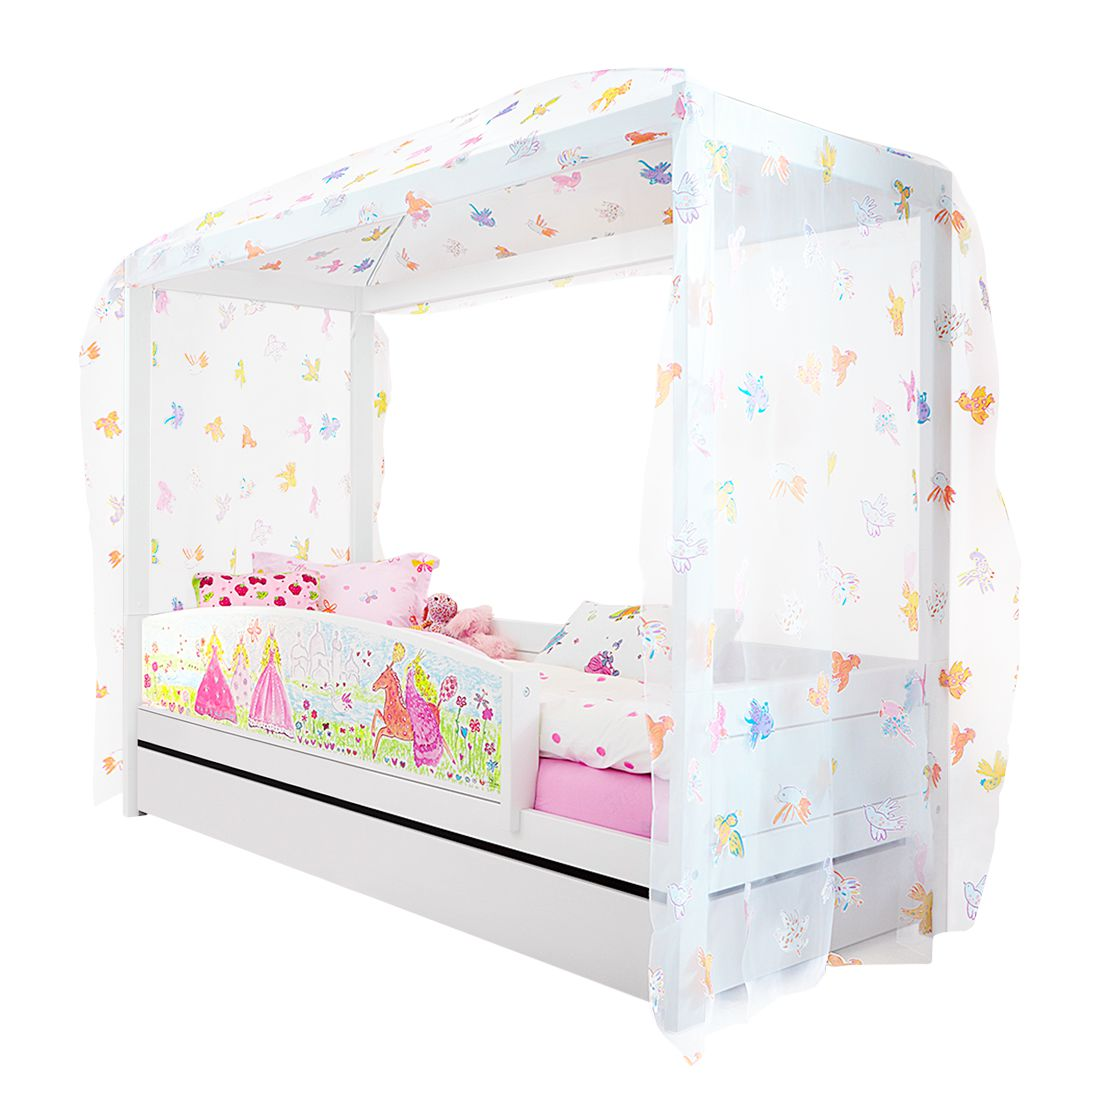 Himmelbett Princess Lifetime Original - Kiefer teilmassiv - Weiß - Mit Rollrost, Lifetime Kidsrooms